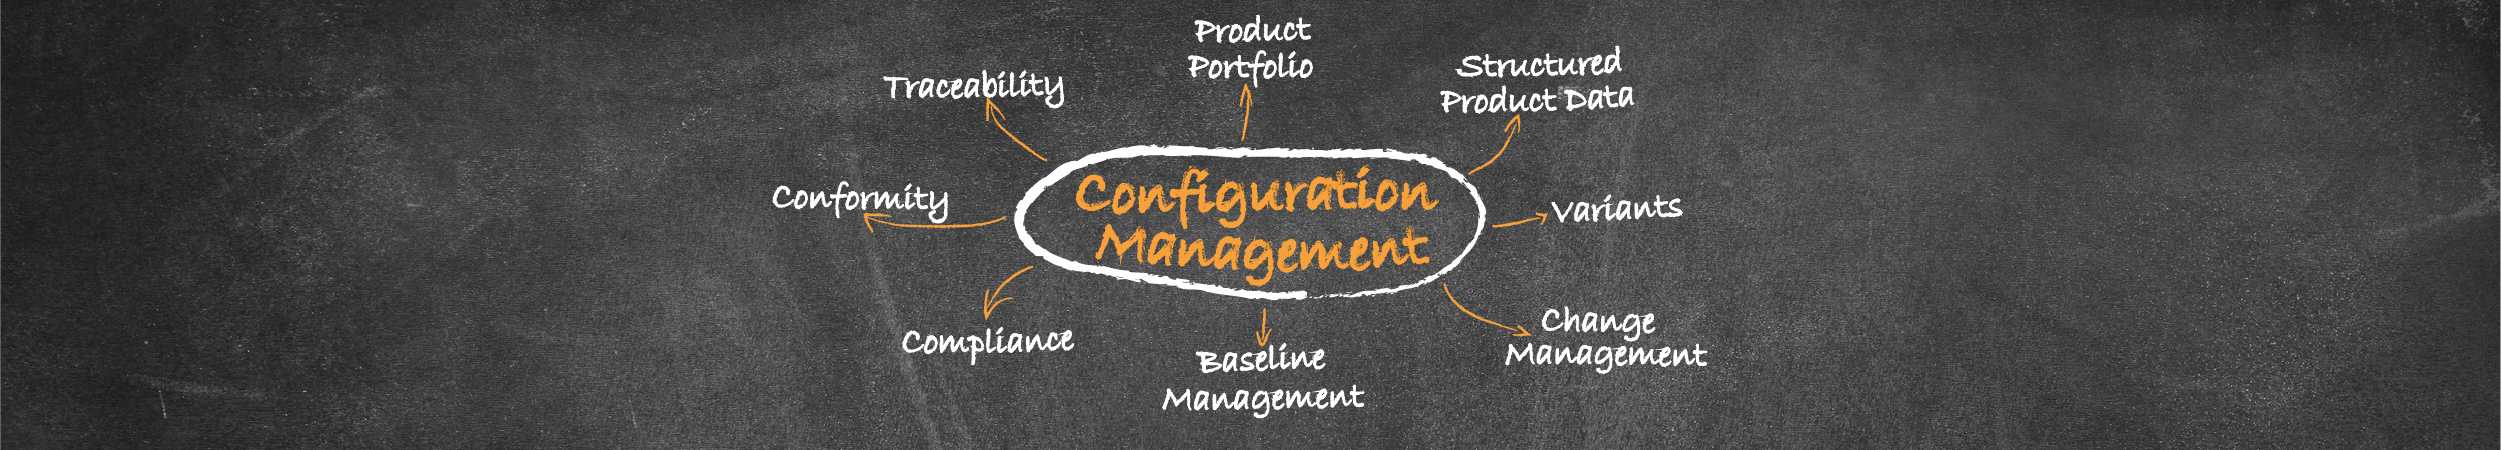 slide_academy_curriculum_configuration_management2